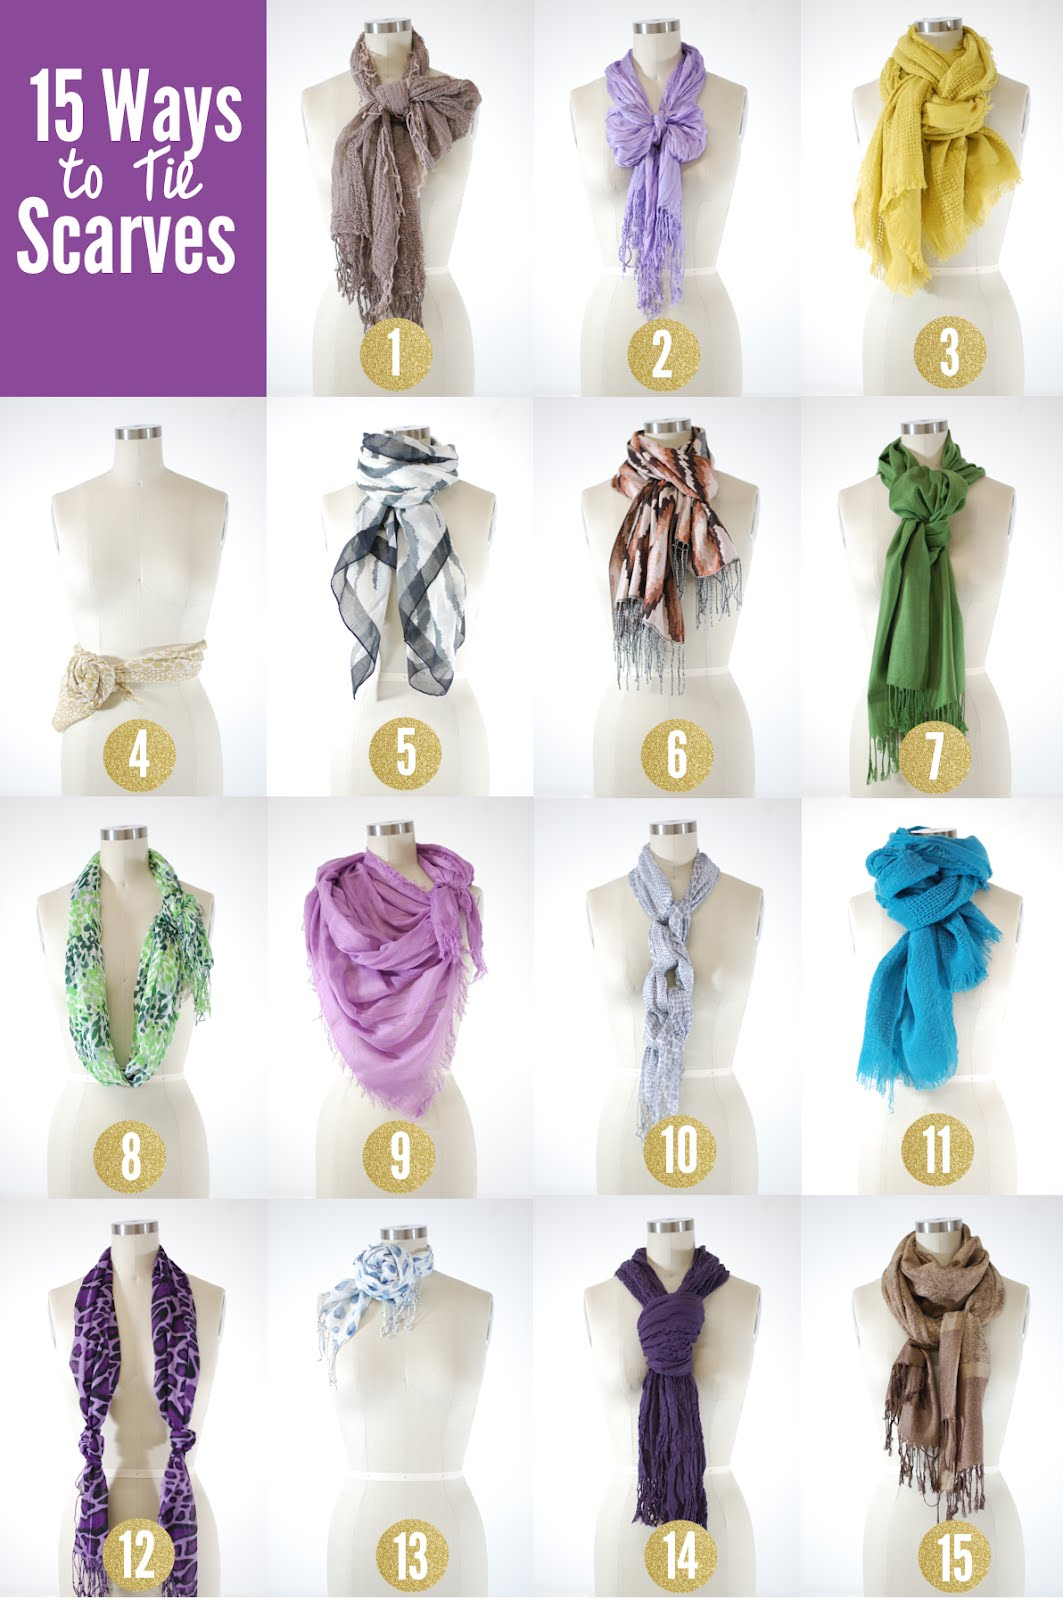 15 Ways to Tie Scarves | Stars for Streetlights